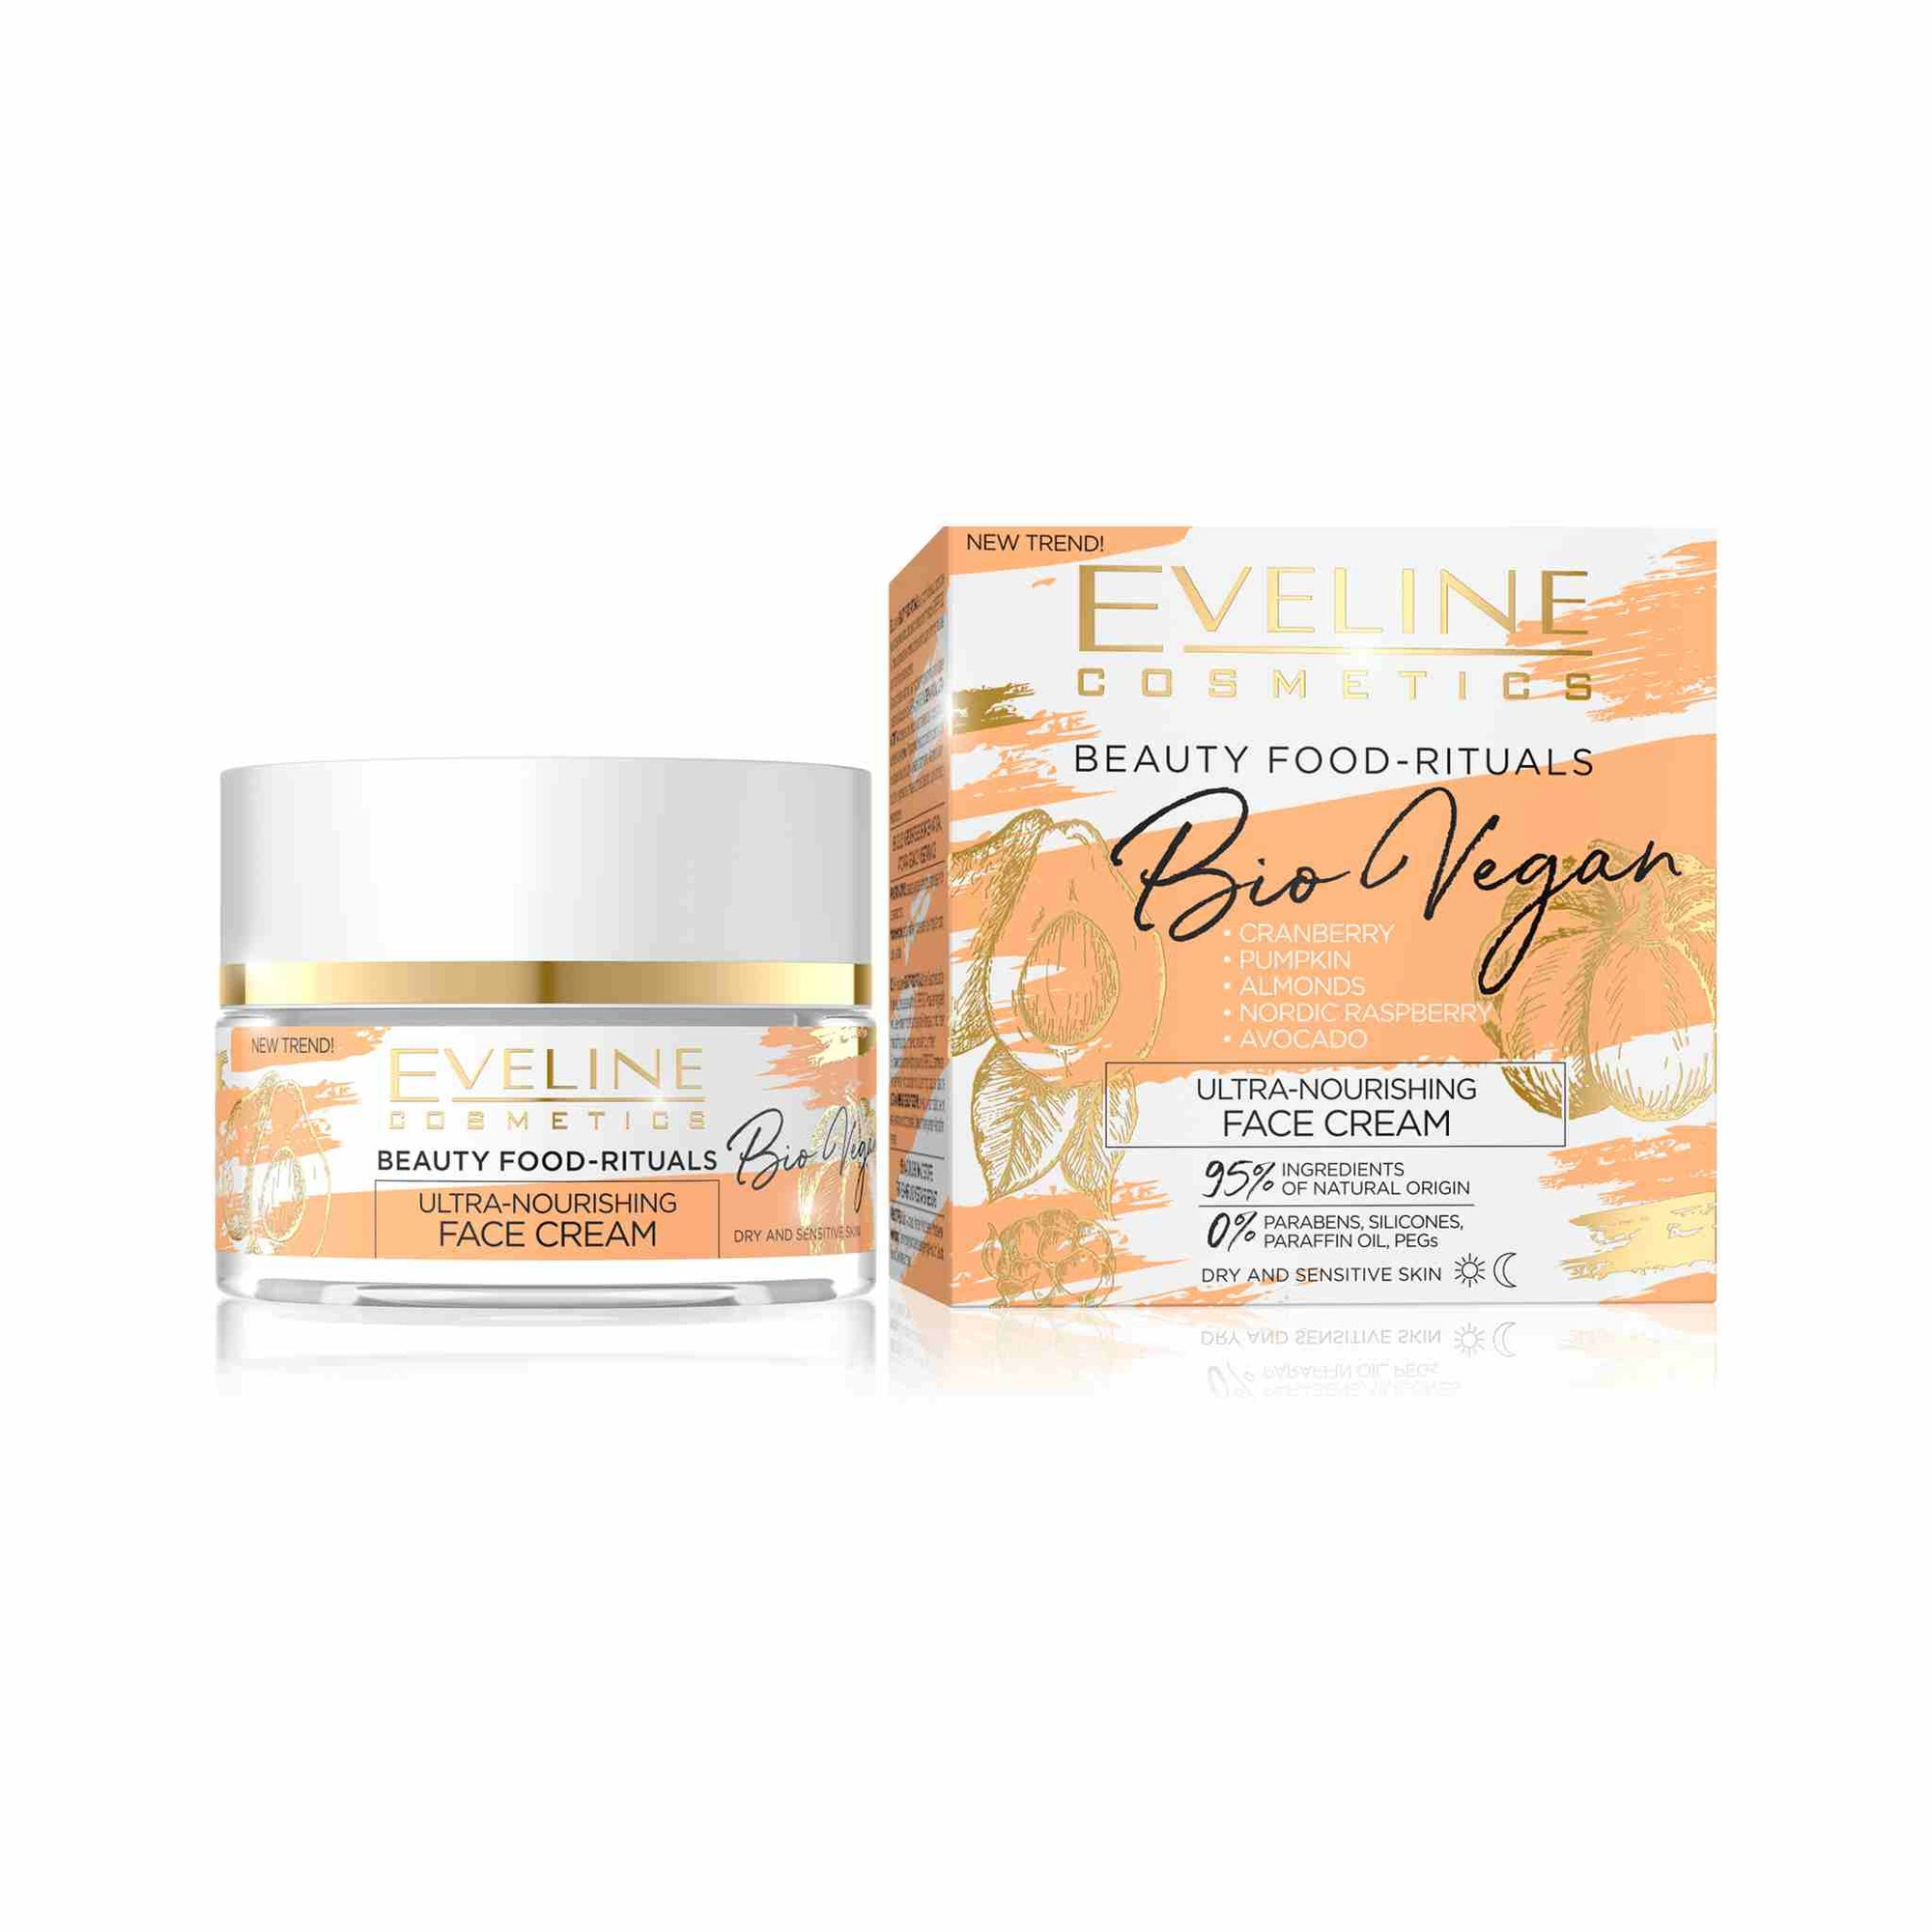 Bio Vegan Ultra-Nourishing Face Cream